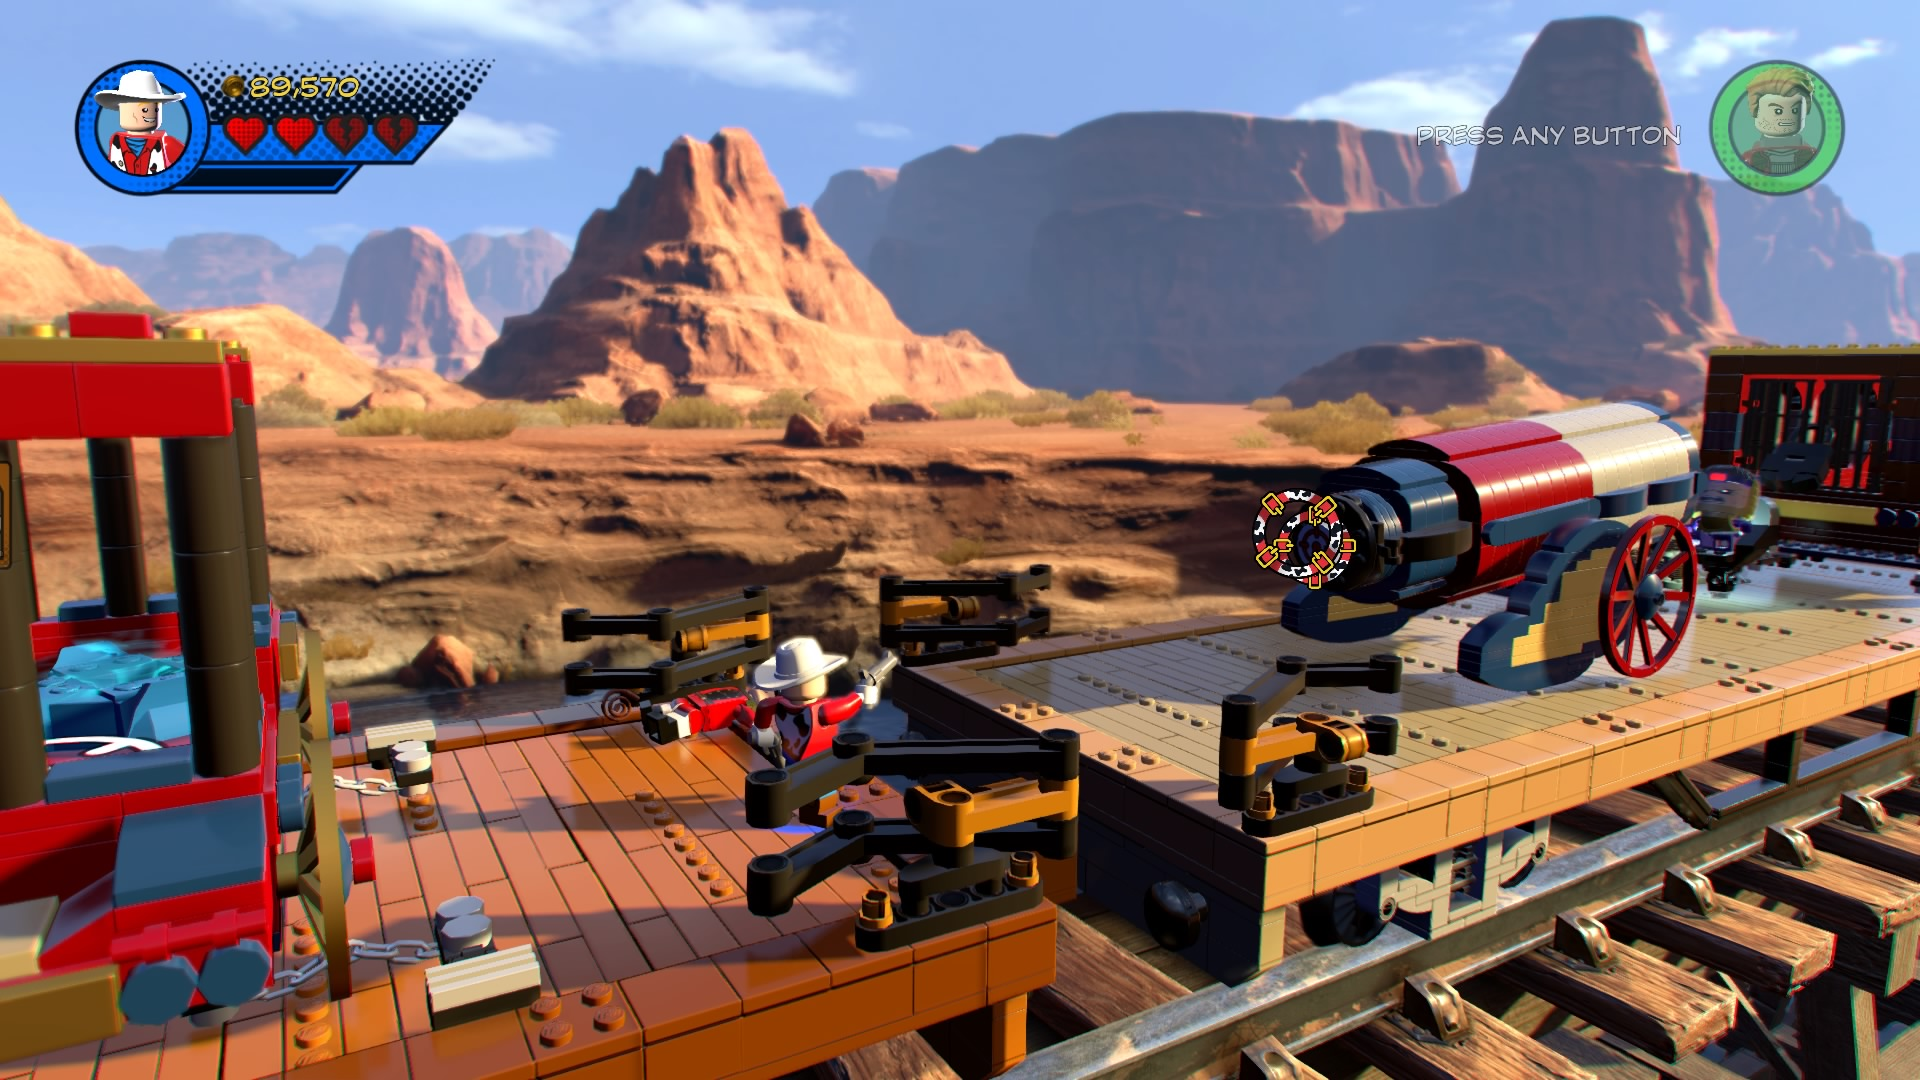 Lego marvel super heroes 2 walkthrough level 6 high noon saloon the references are even more obscure in level 6 of lego marvel super heroes 2 everyone knows the manic over sized face of modok but youll also voltagebd Choice Image